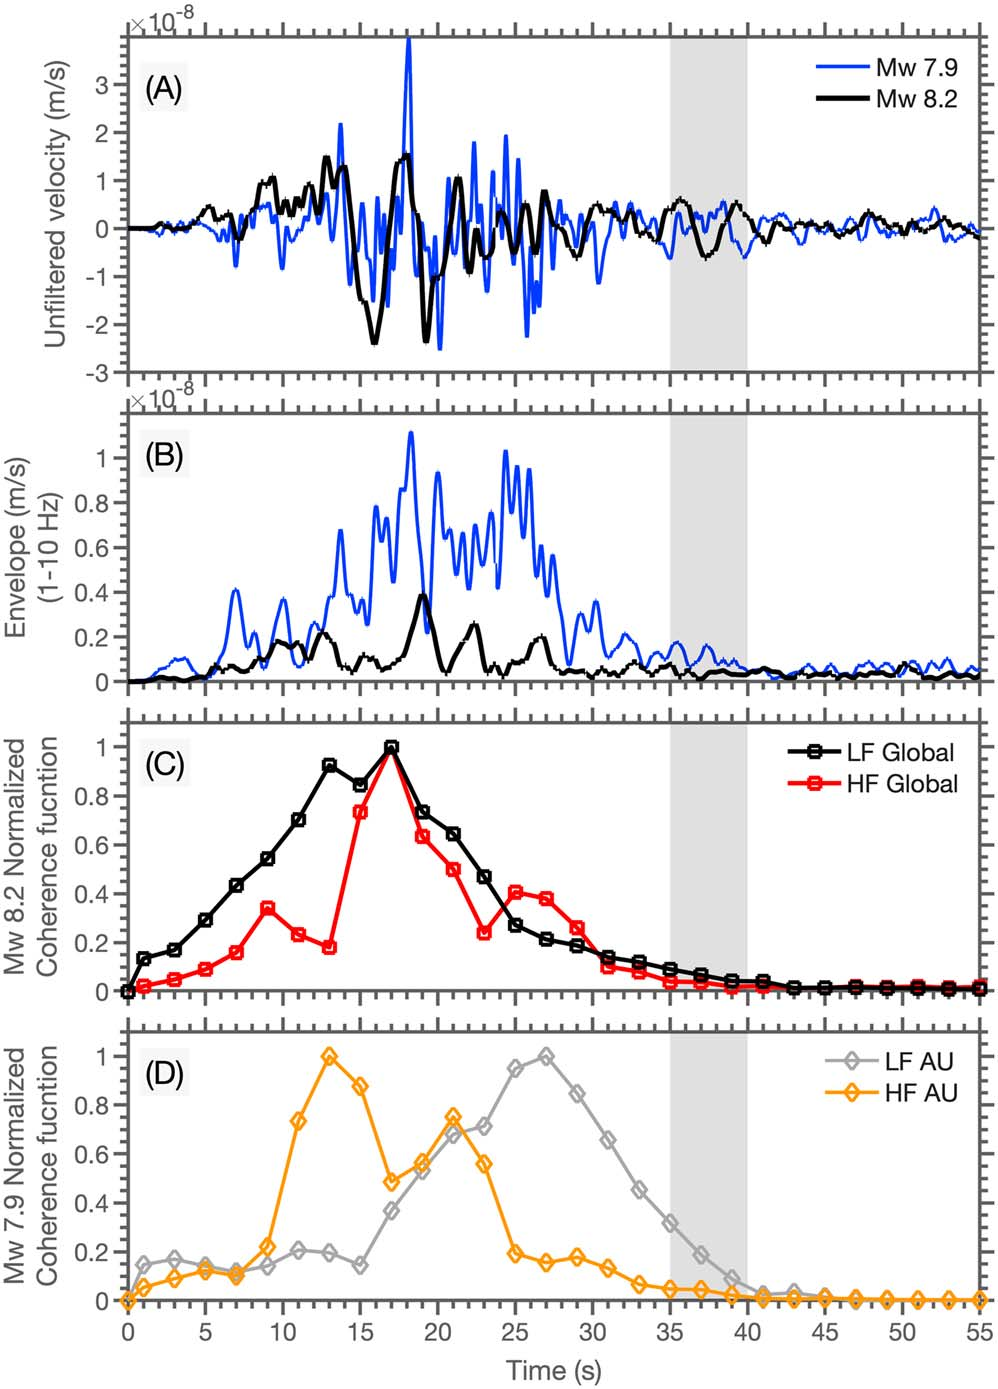 Ground motions of the two earthquakes recorded by a nearby seismic station, and rupture durations from both near and far field observations. Records suggest that both earthquakes ruptured for about 35 seconds even though the first quake released three times more energy than the second.